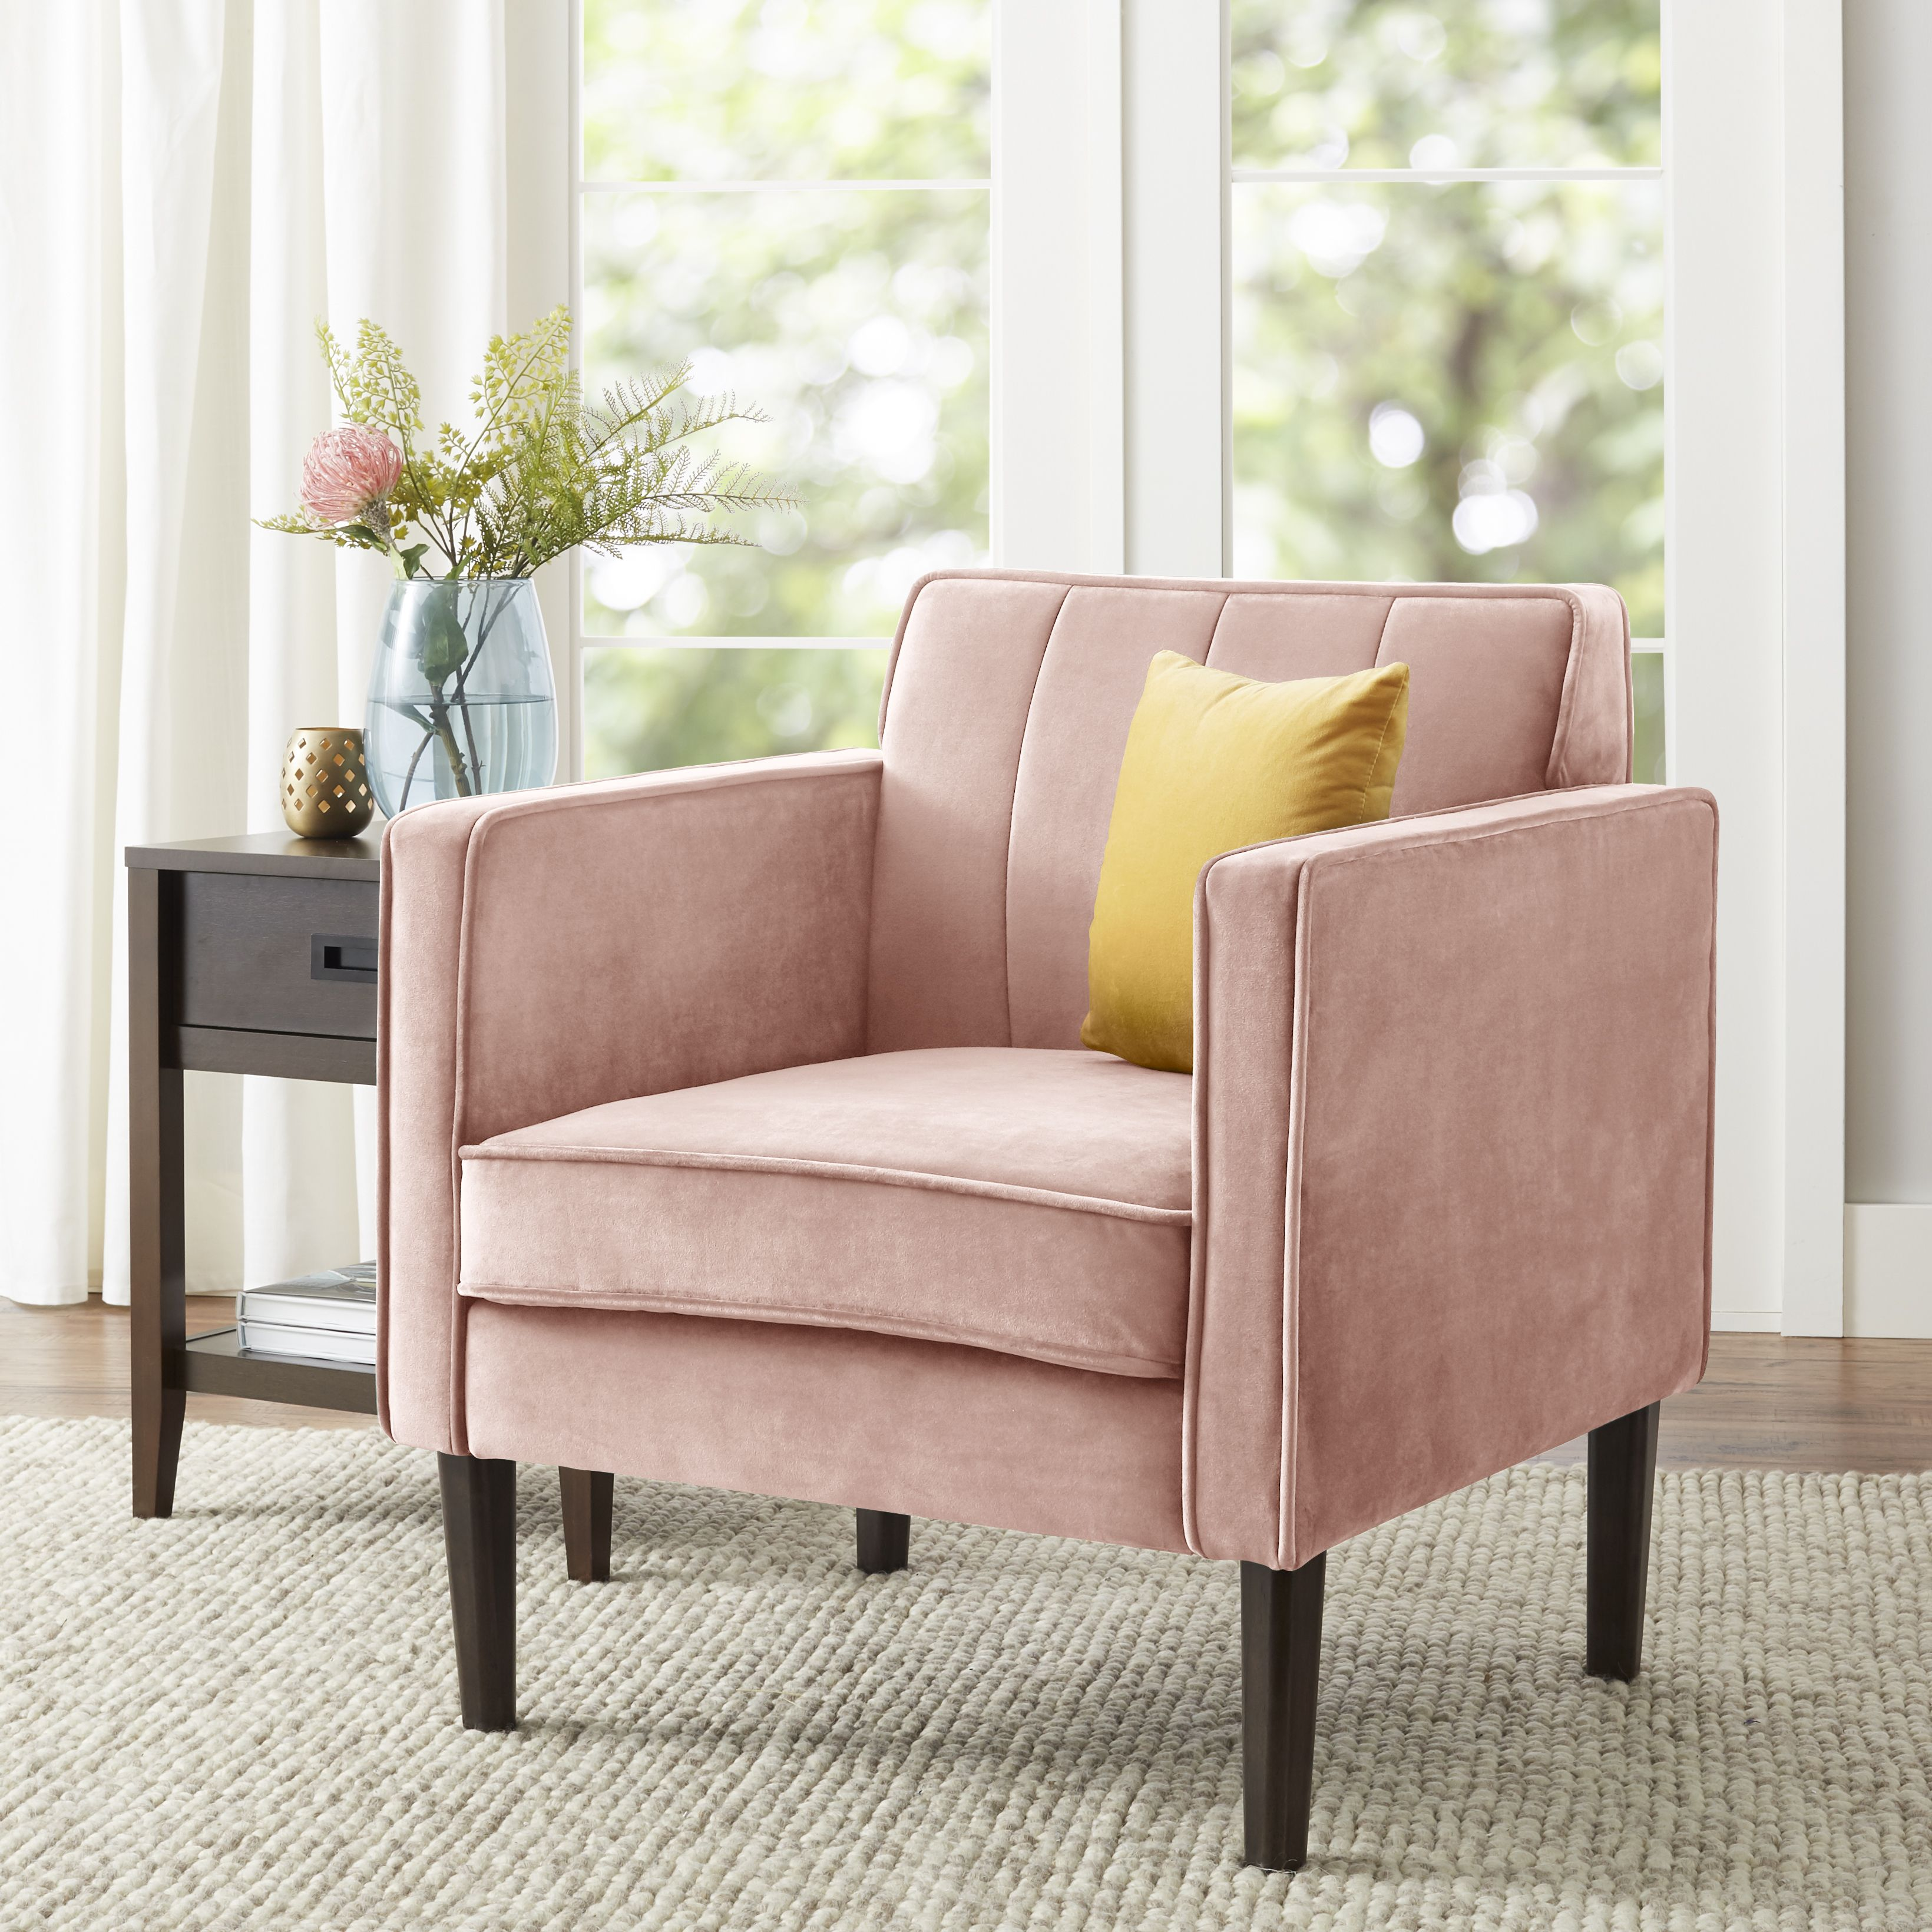 Home Living Room Chairs Living Room Lounge Garden Lounge Chairs